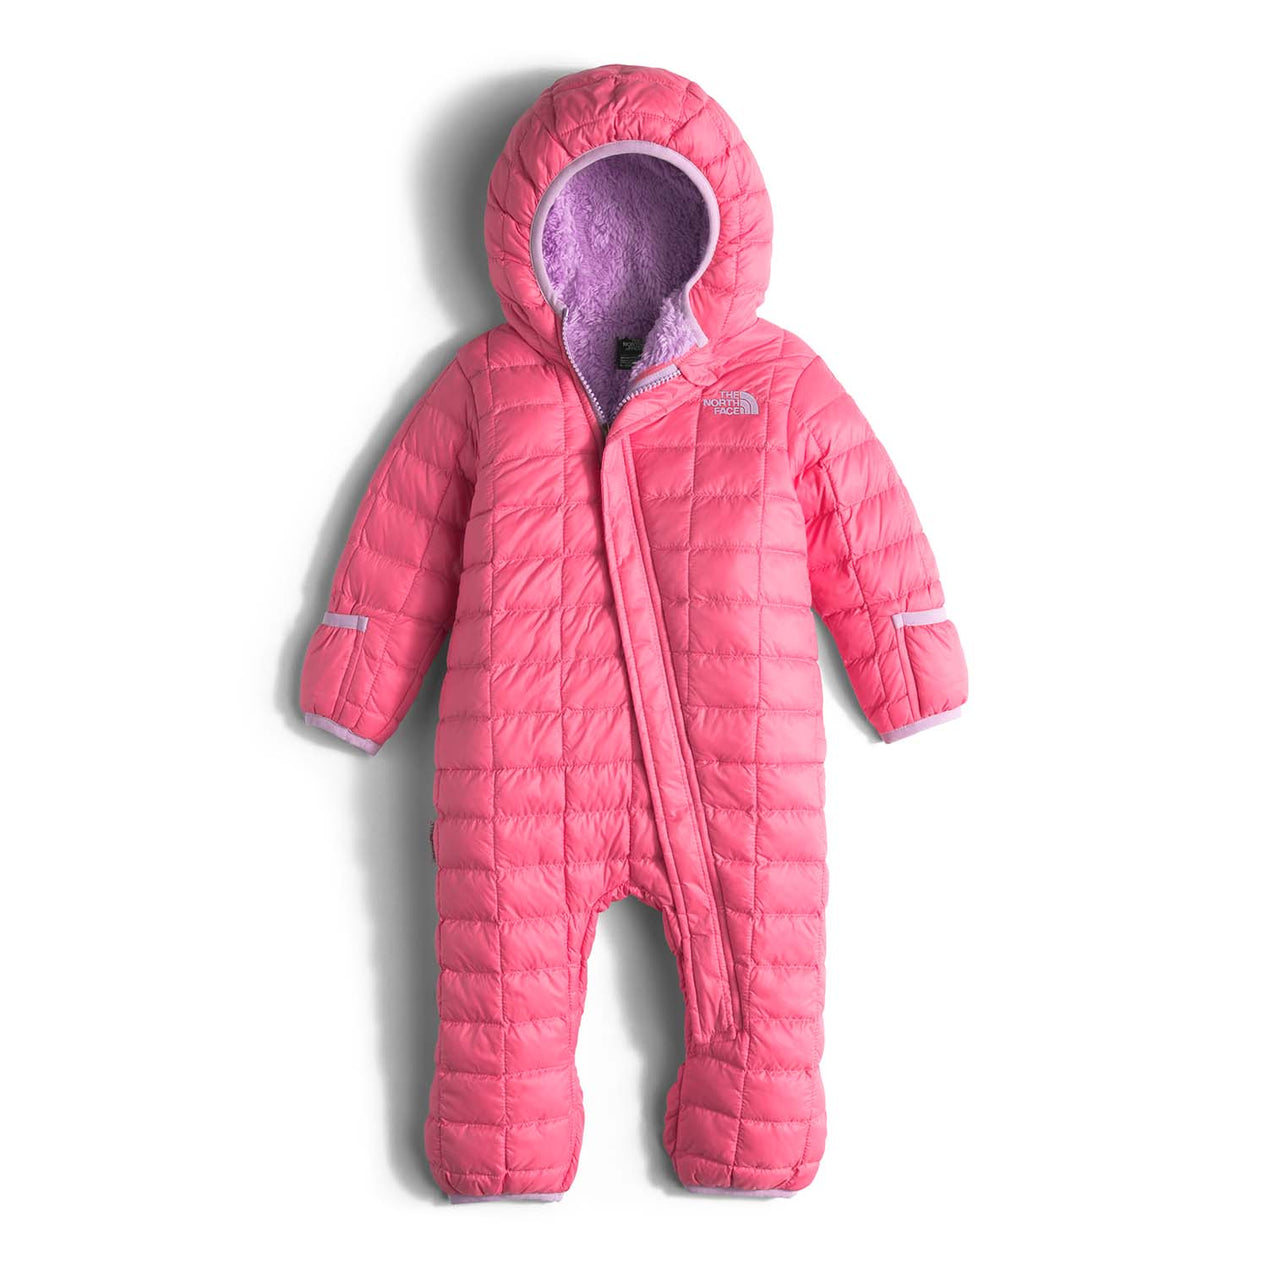 5d3d4d4e8 The North Face Infant Thermoball Bunting Past Season